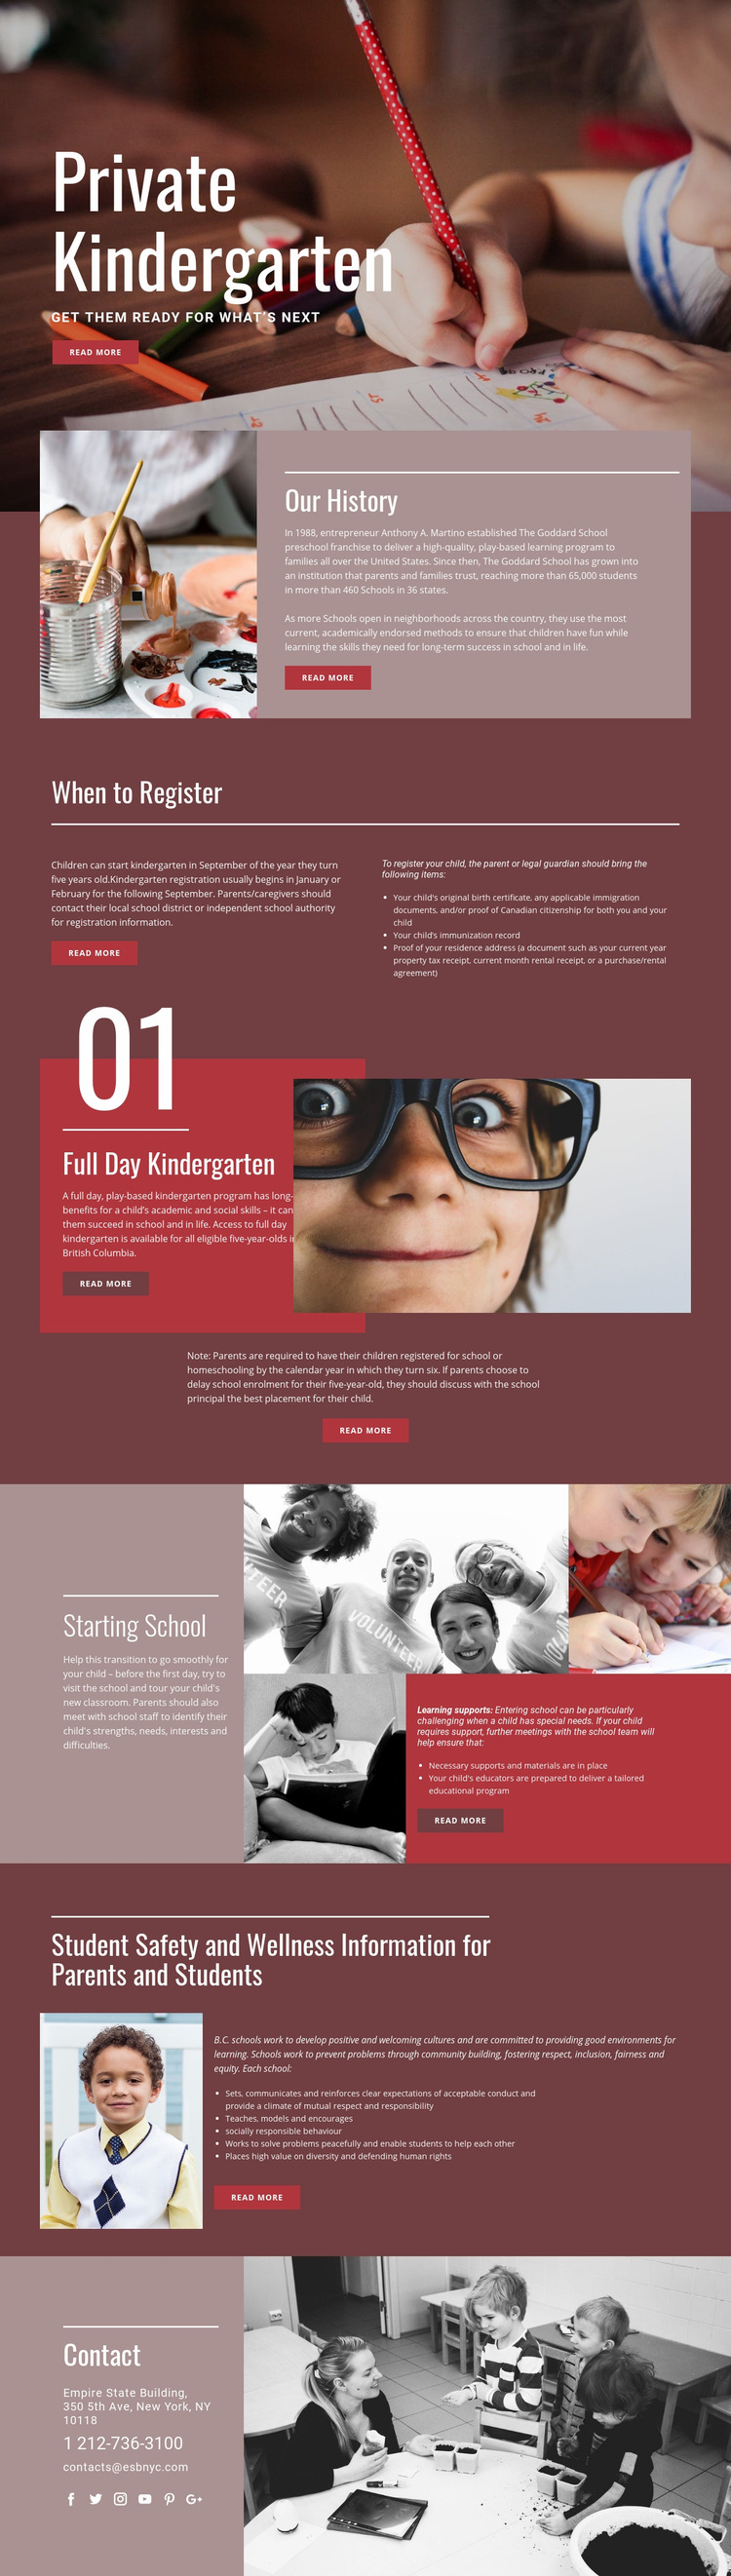 Private elementary education Web Page Designer